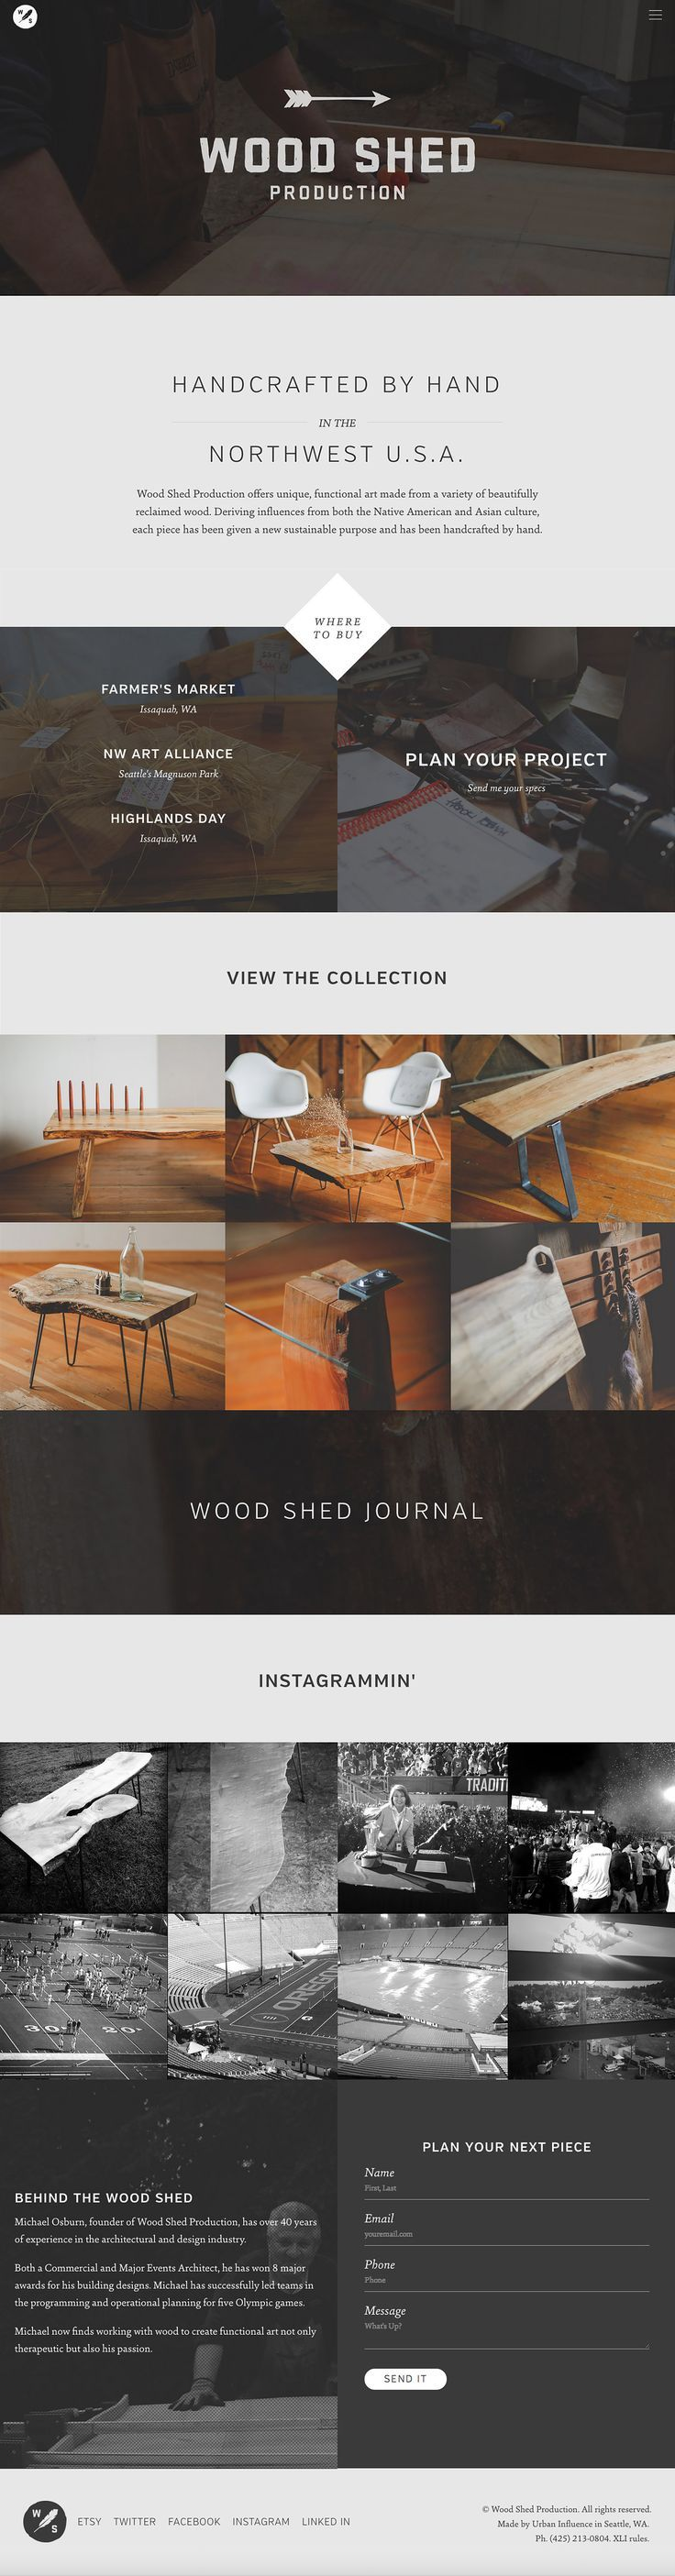 Responsive one pager integrated into wordpress that showcases the beautiful custom furniture by wood shed